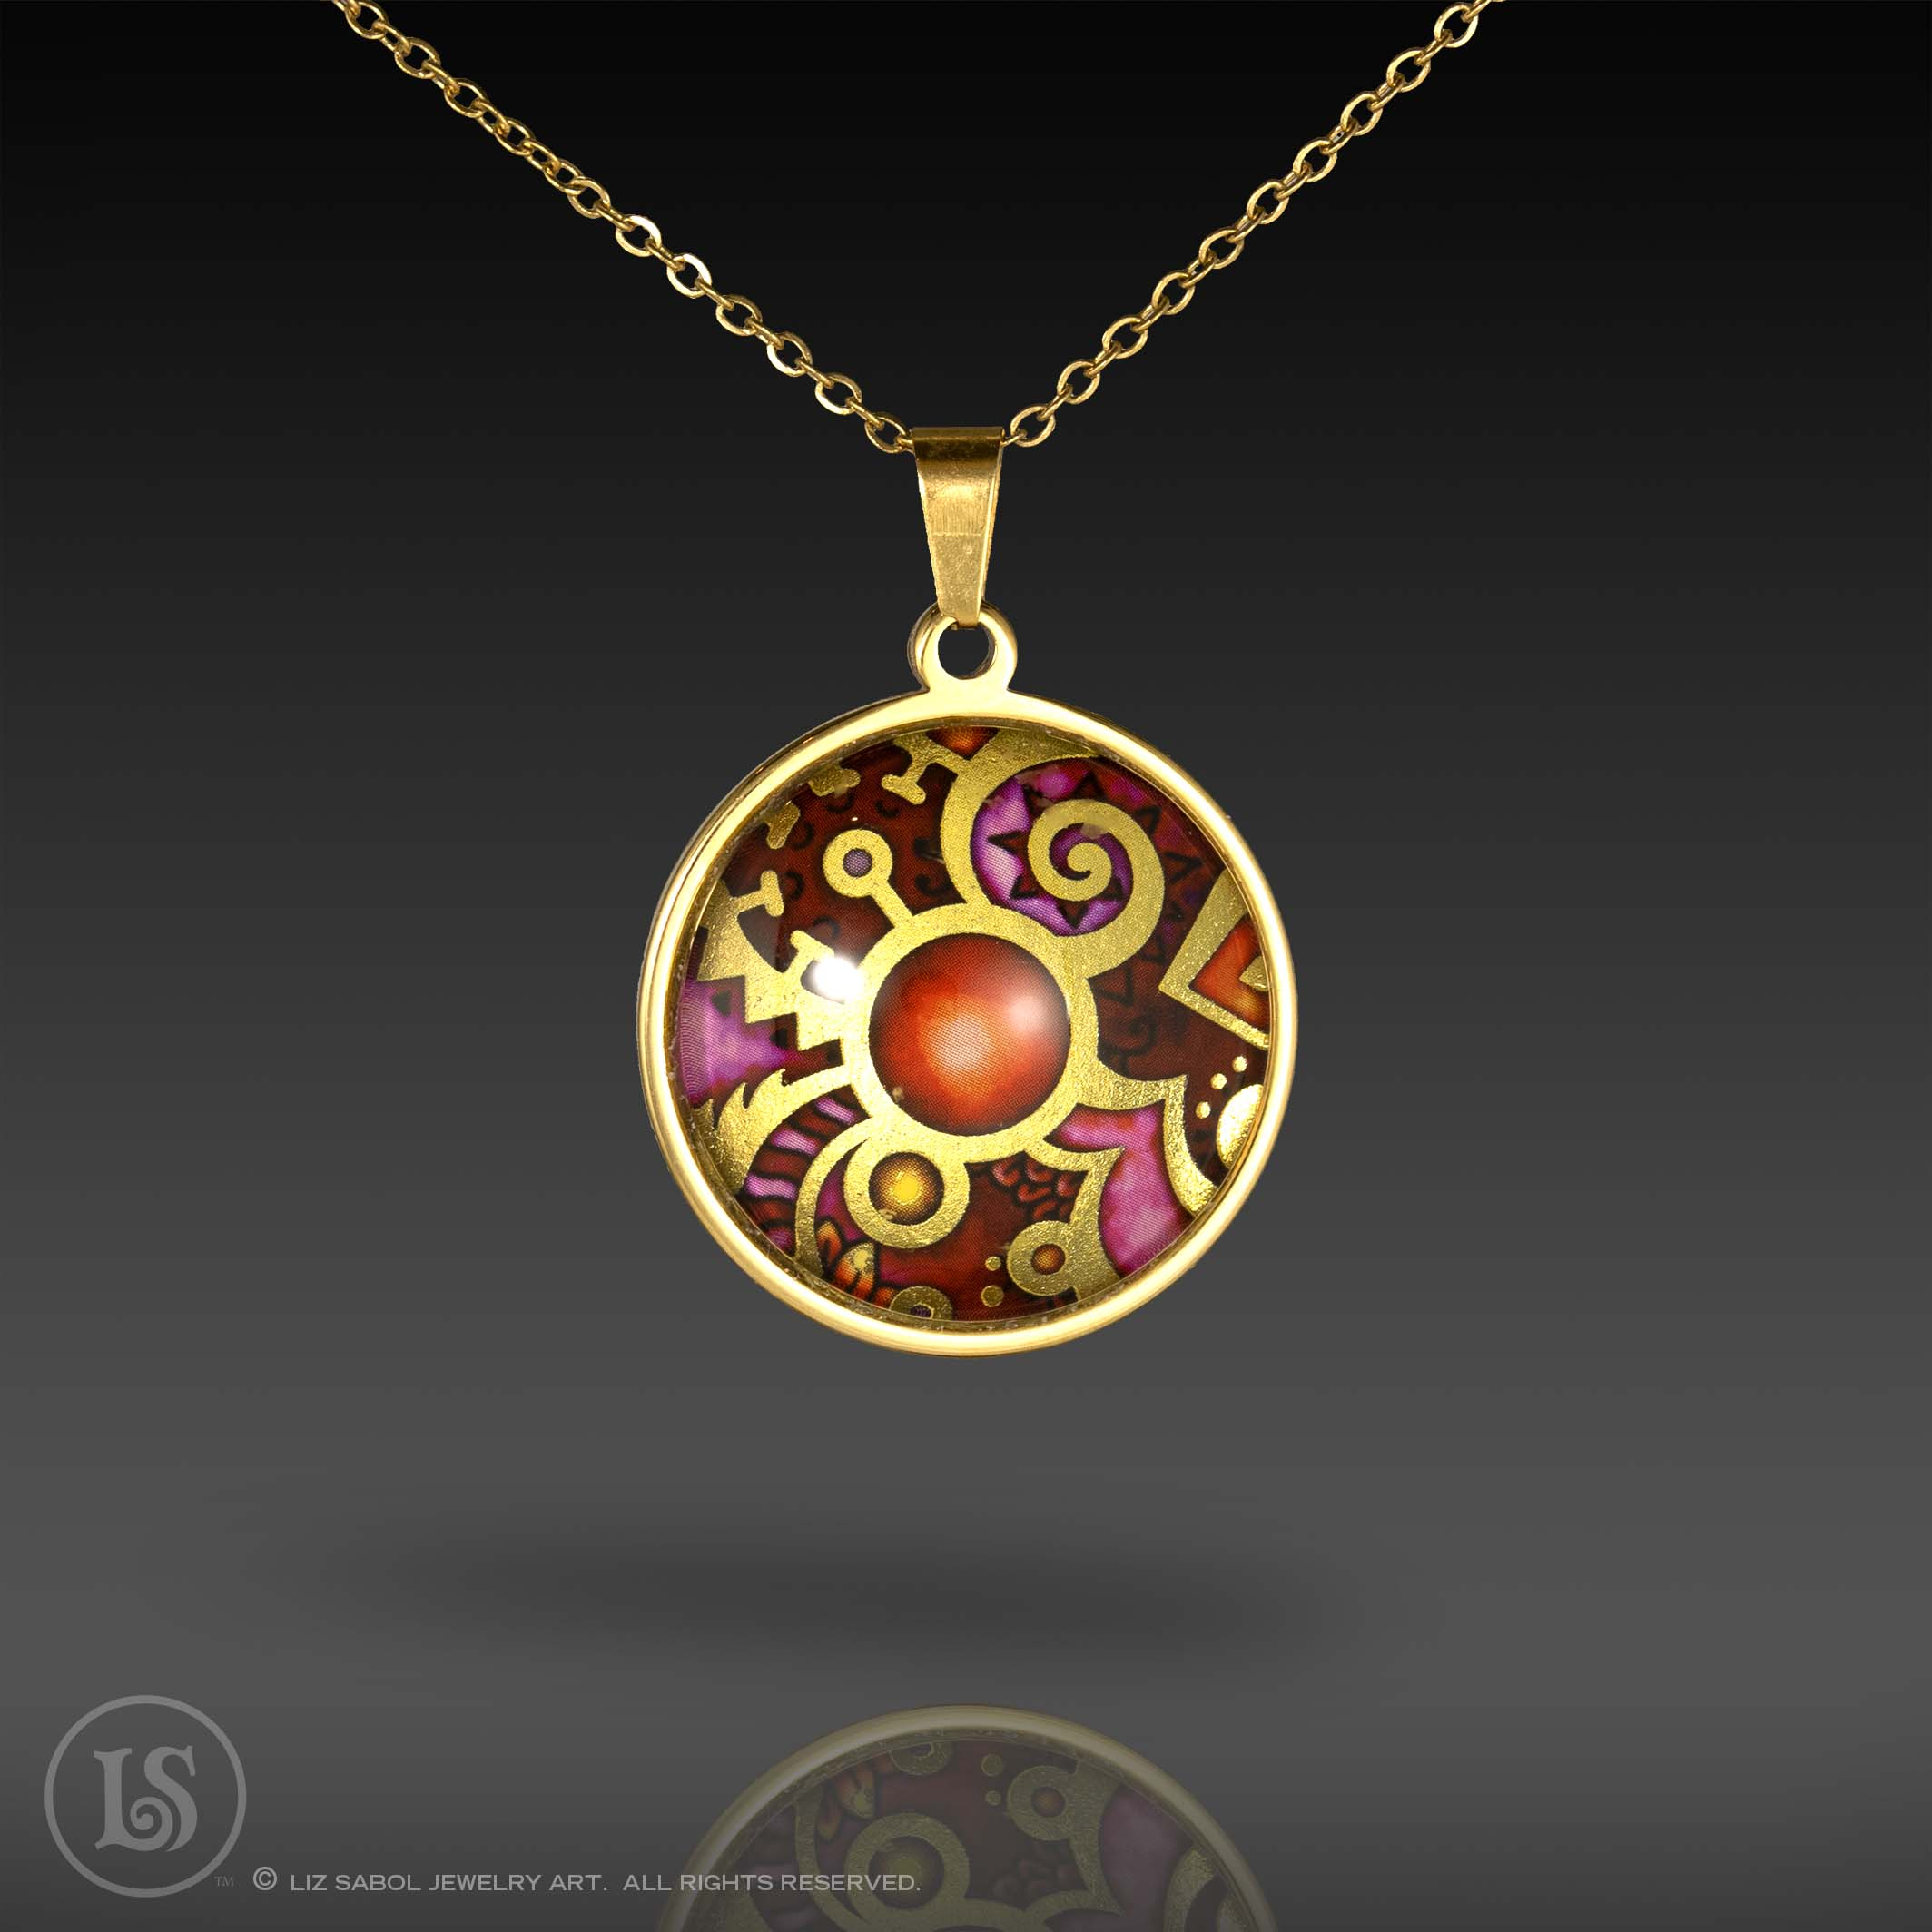 Paisley Magenta Pendant, Glass, Gold-plated Stainless Steel